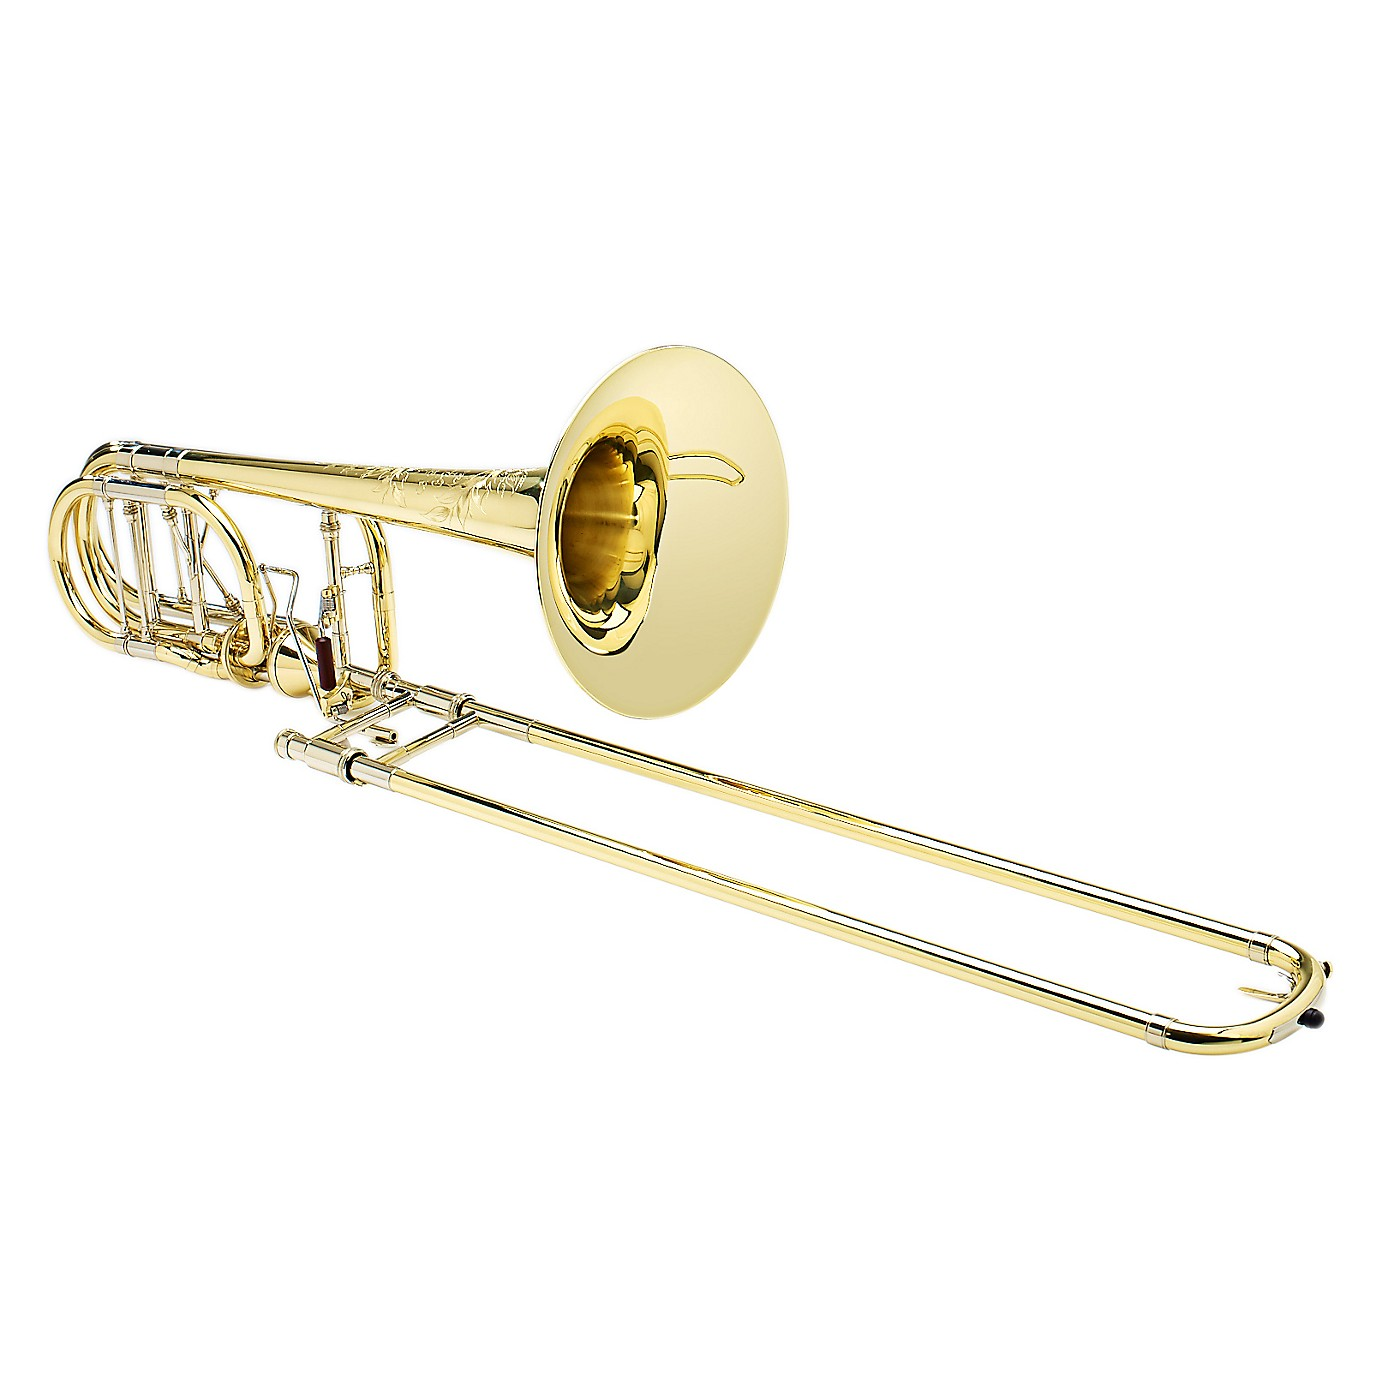 S.E. SHIRES Blair Bollinger Bass Trombone with Axial-Flow F/Flat G Attachment thumbnail